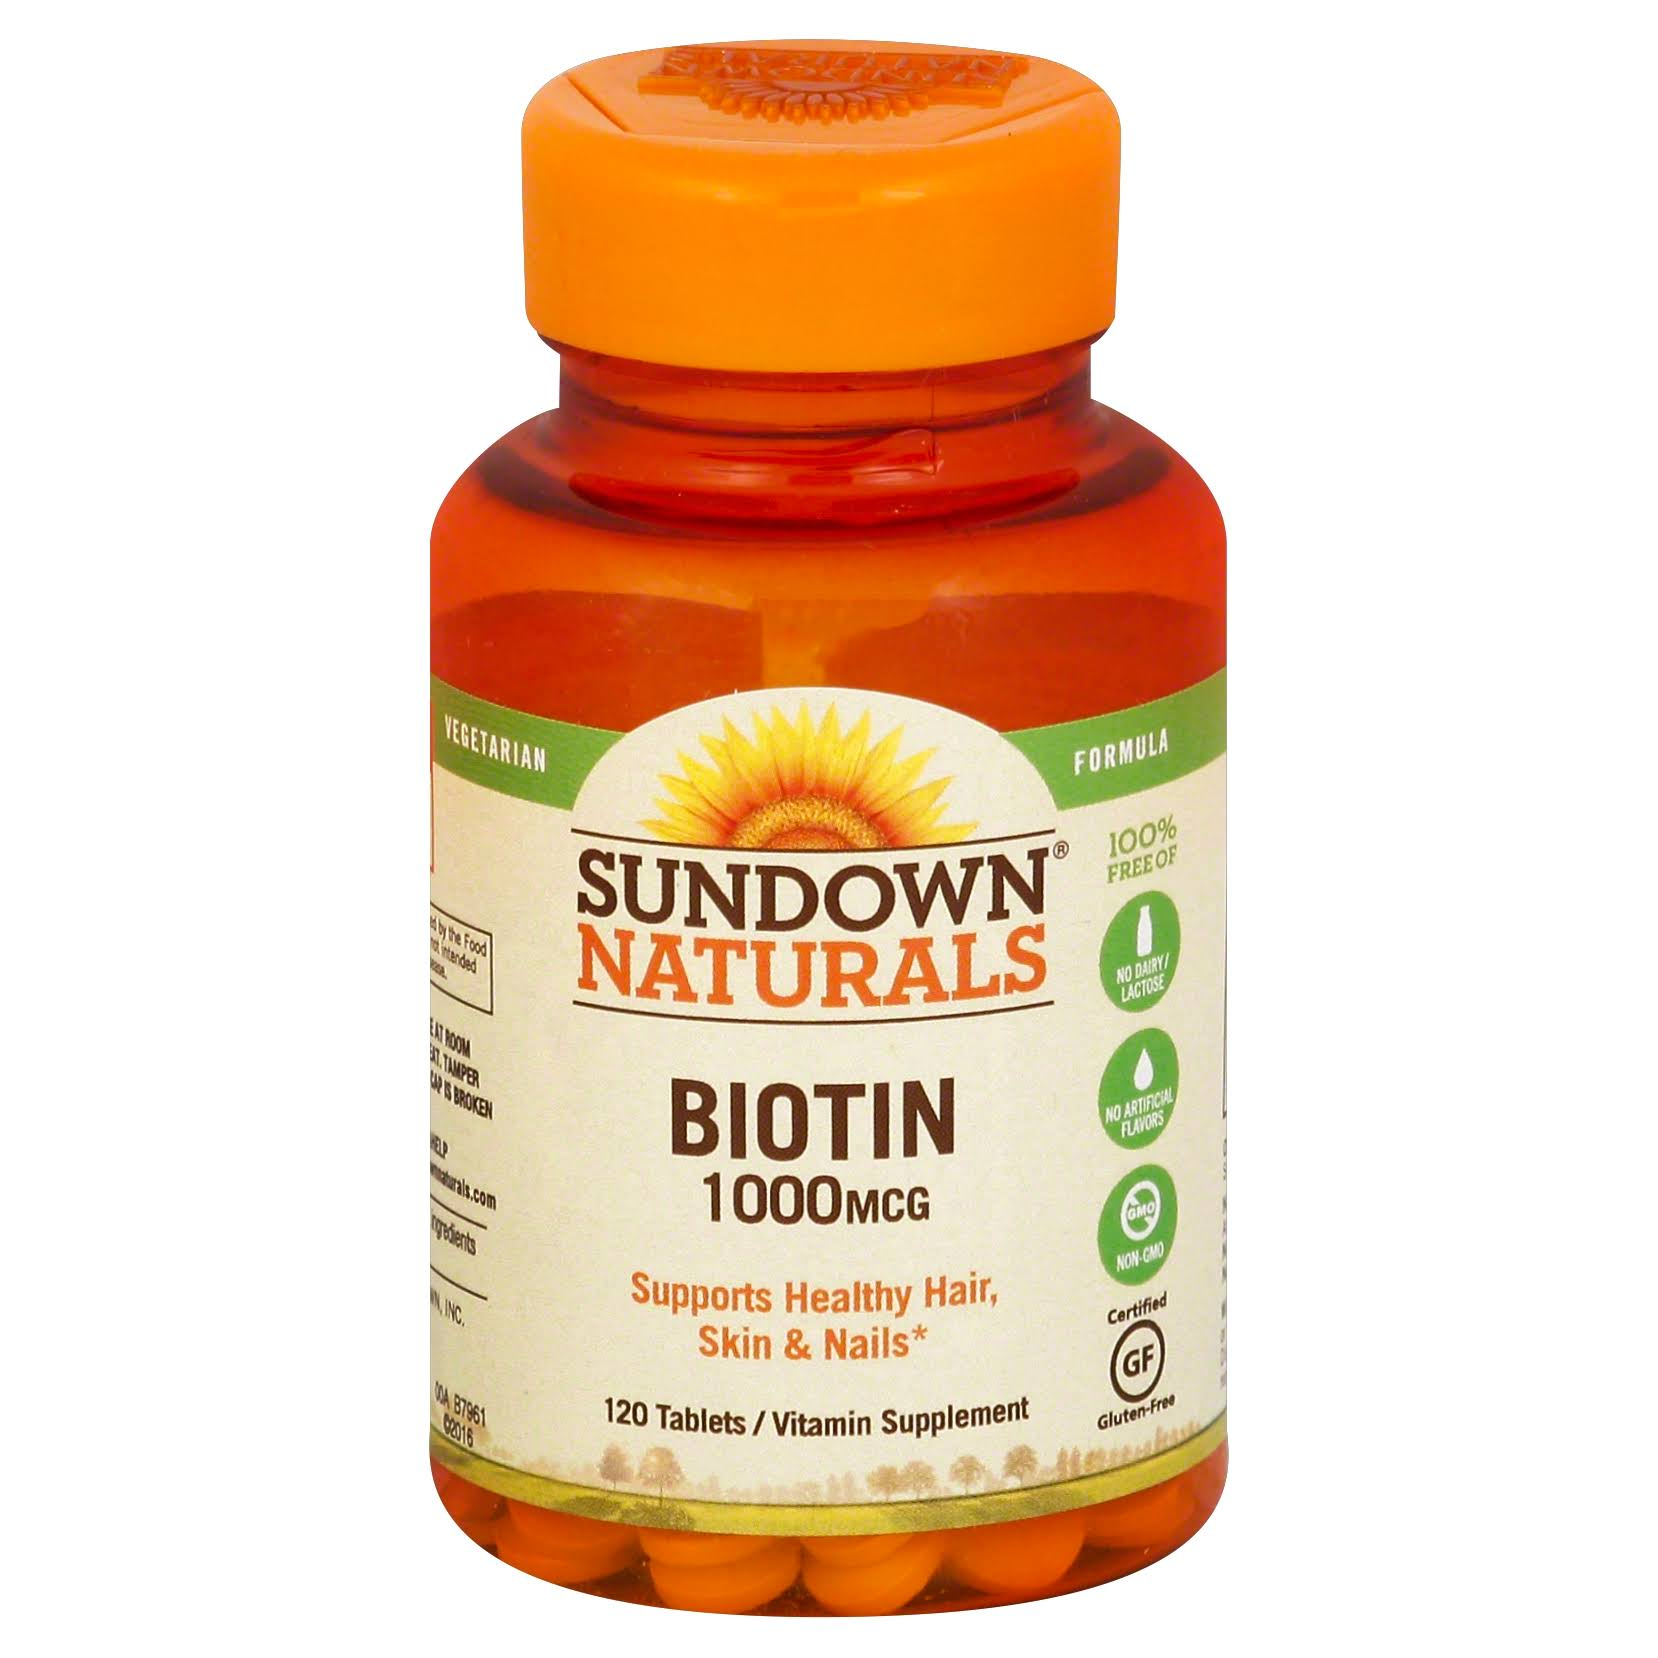 Sundown Naturals Biotin Vitamin Supplement - 1000mcg, 120ct